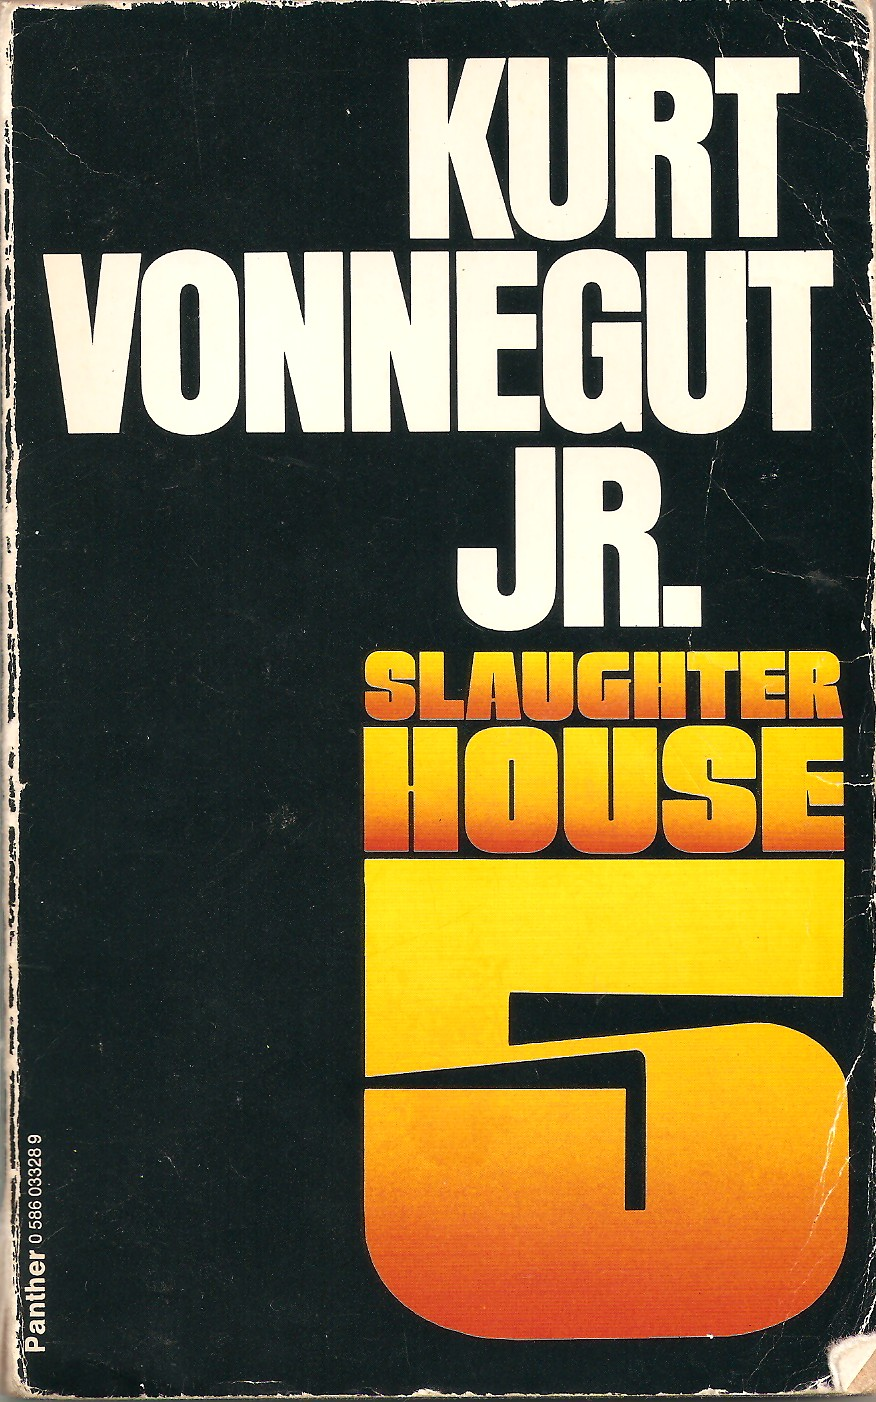 Postmodern Narrative in Kurt Vonnegut's Slaughterhouse-Five